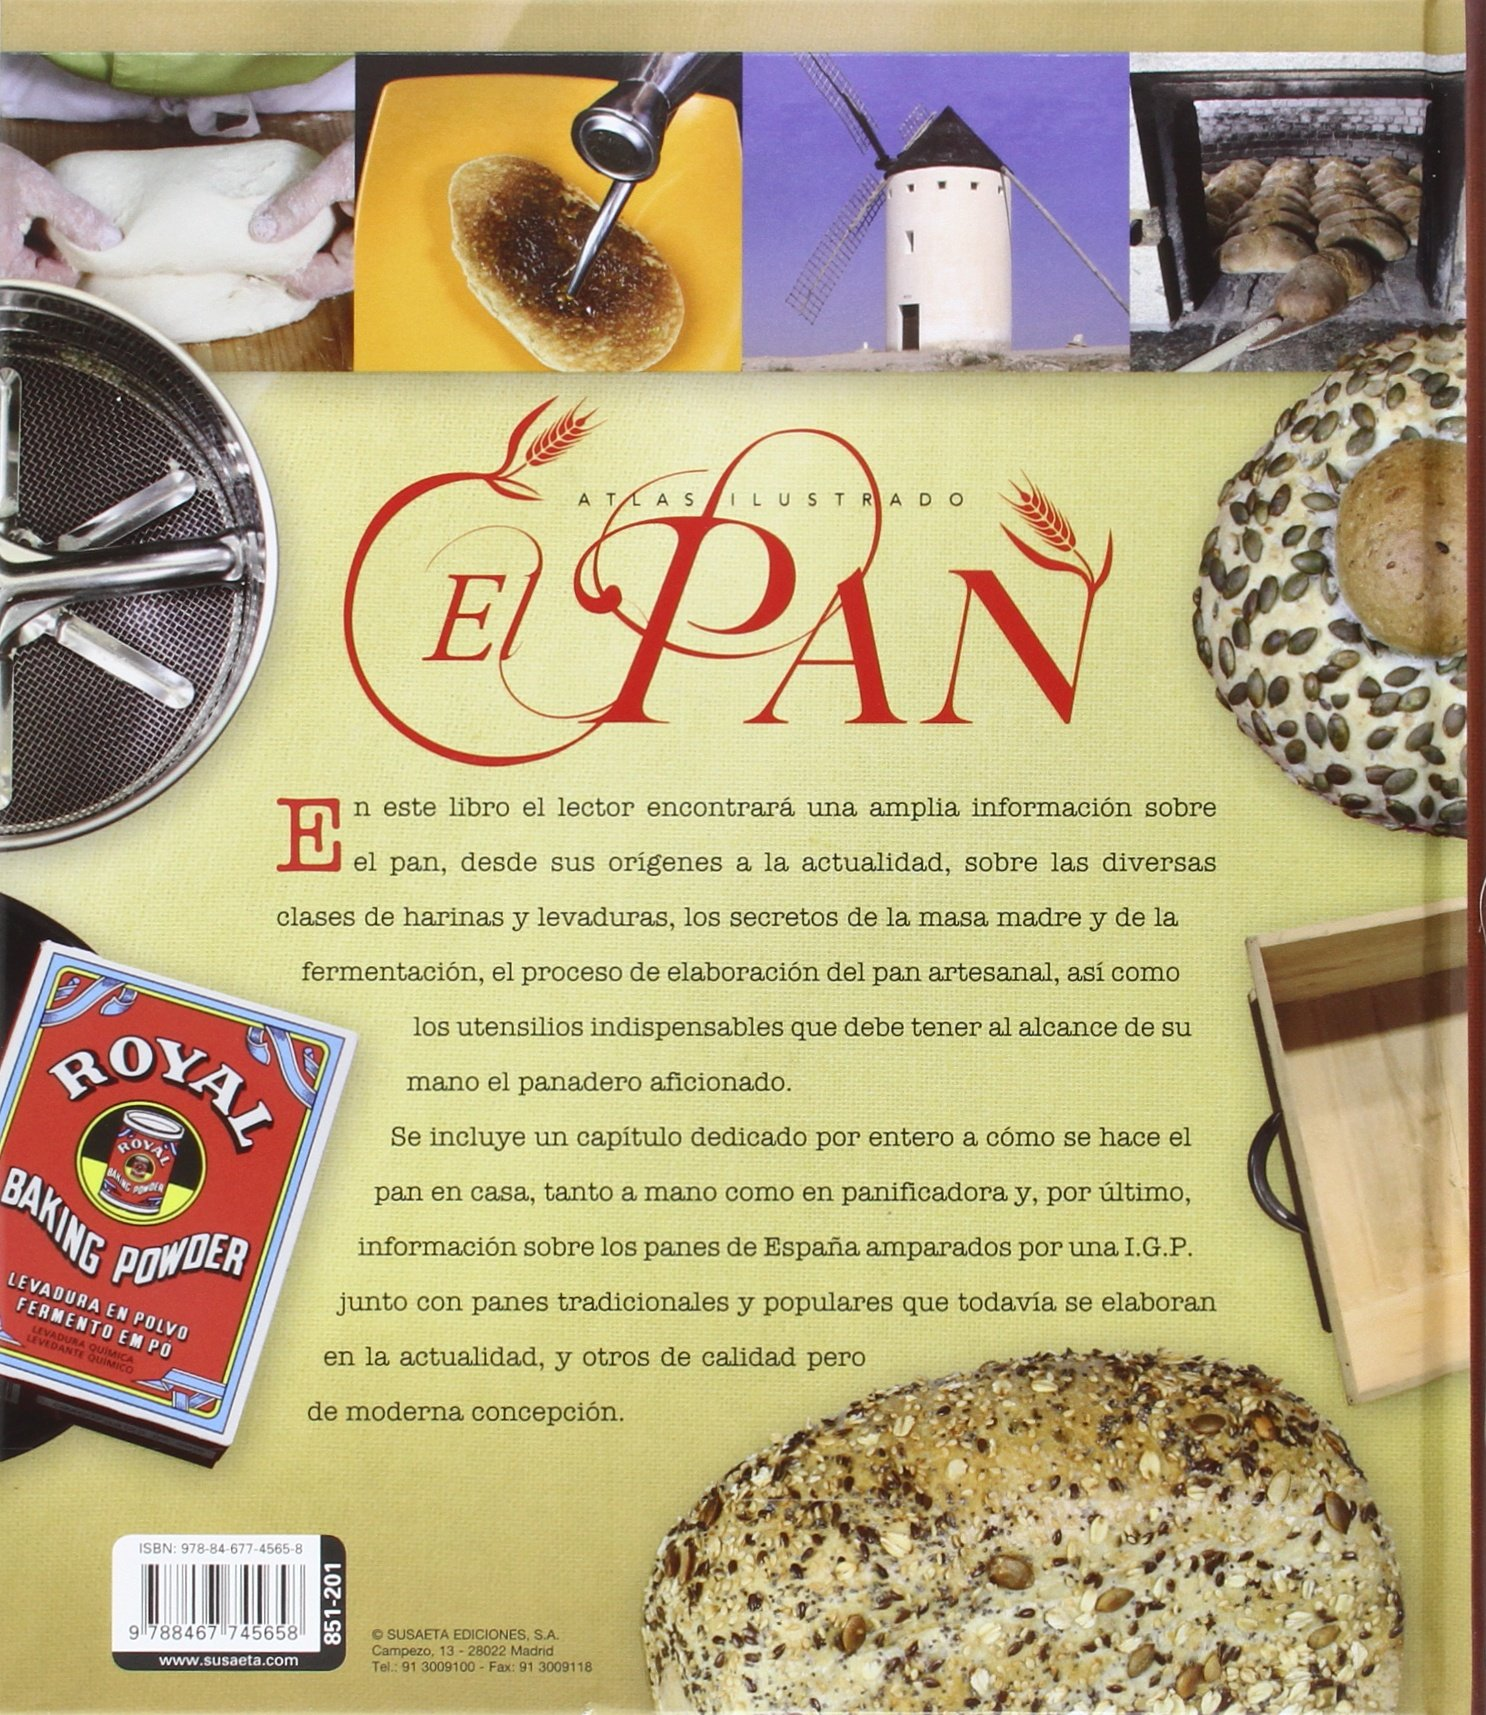 El pan: VARIOS: 9788467745658: Amazon.com: Books